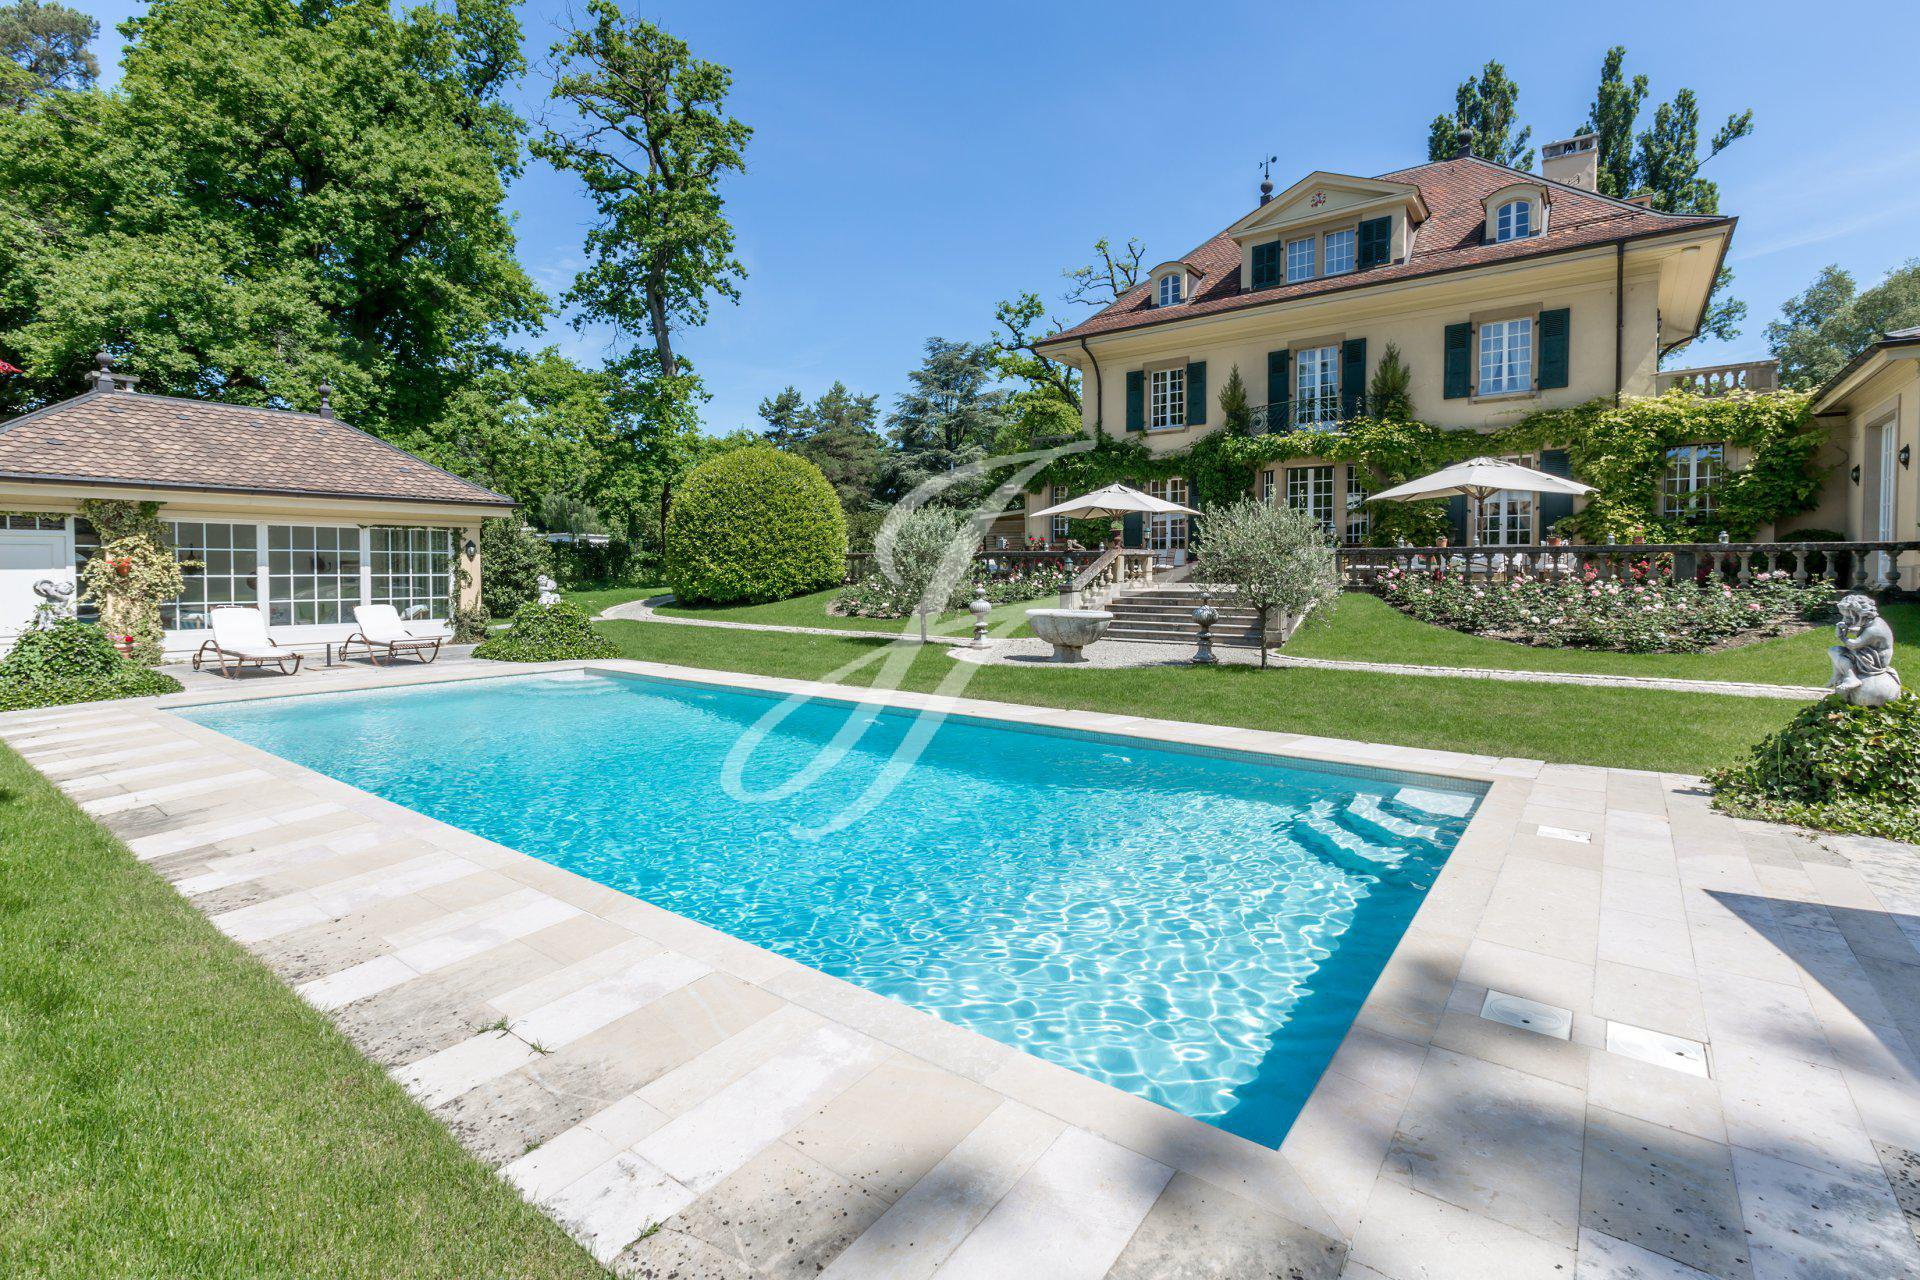 5-Luxury House for sale in Geneva, Switzerland for sale | John Taylor Switzerland | FINEST RESIDENCES